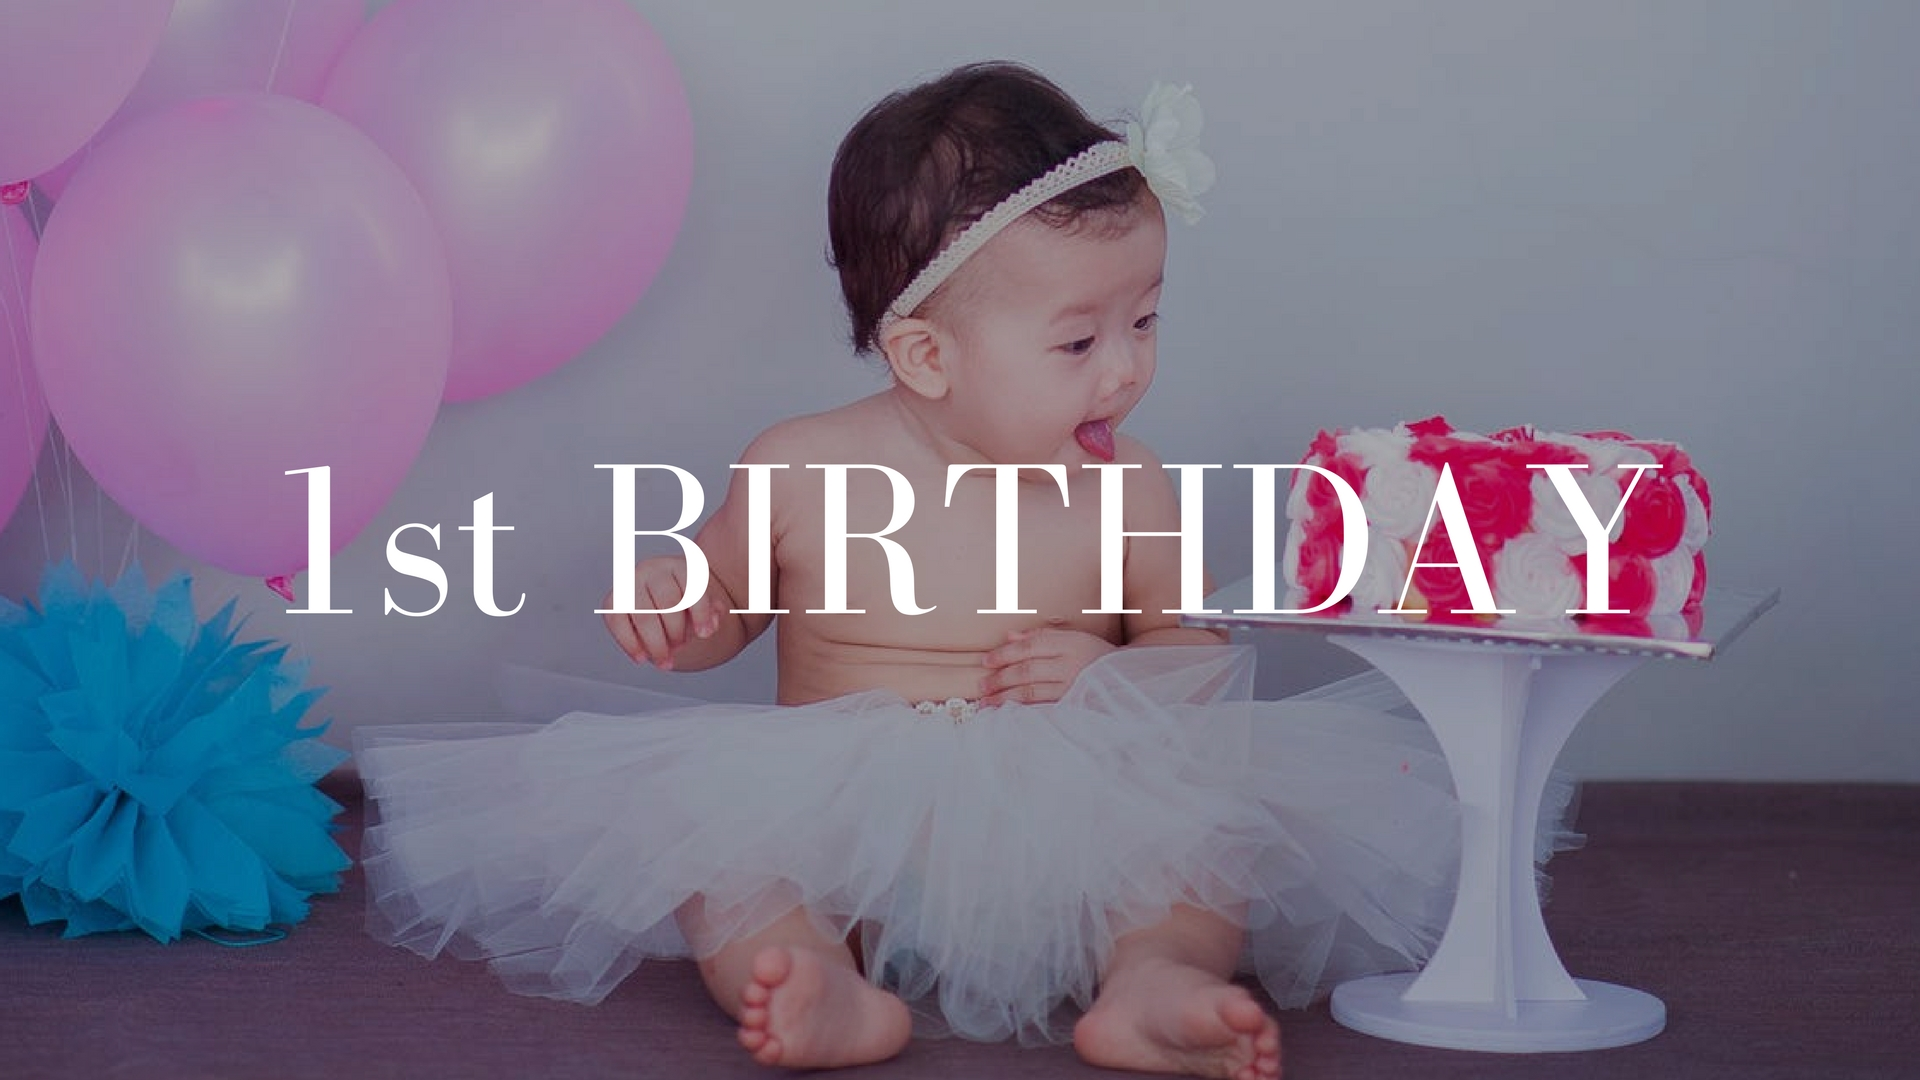 1st-Birthday-Party-Celebration-Package-Venuerific-blog-cute-baby